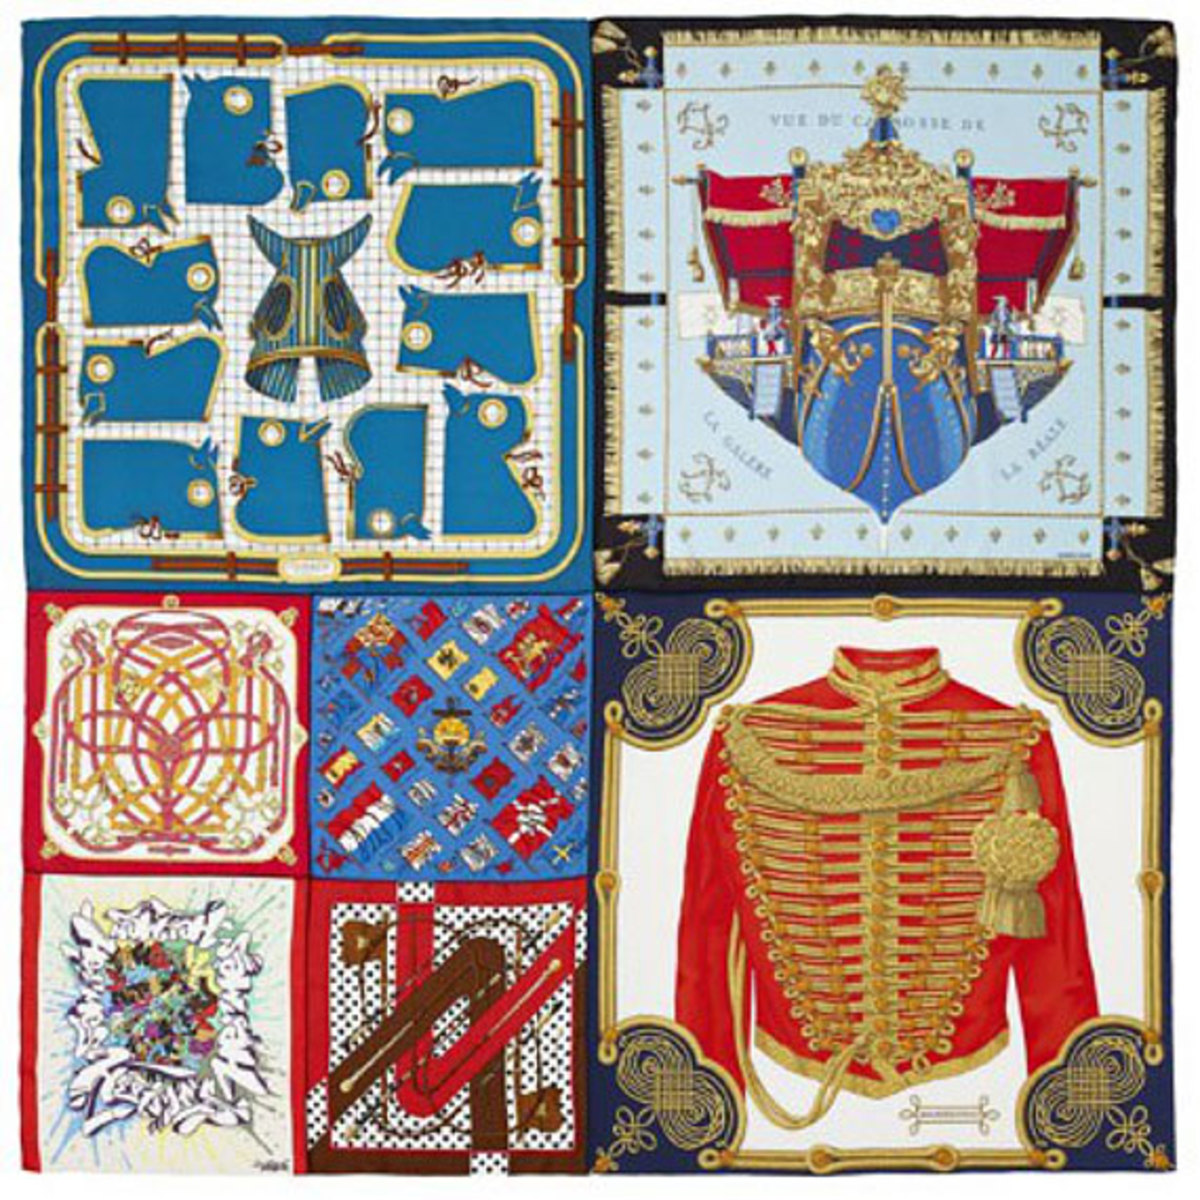 first-look-comme-des-garcons-hermes-comme-des-carres-scarf-collection-03